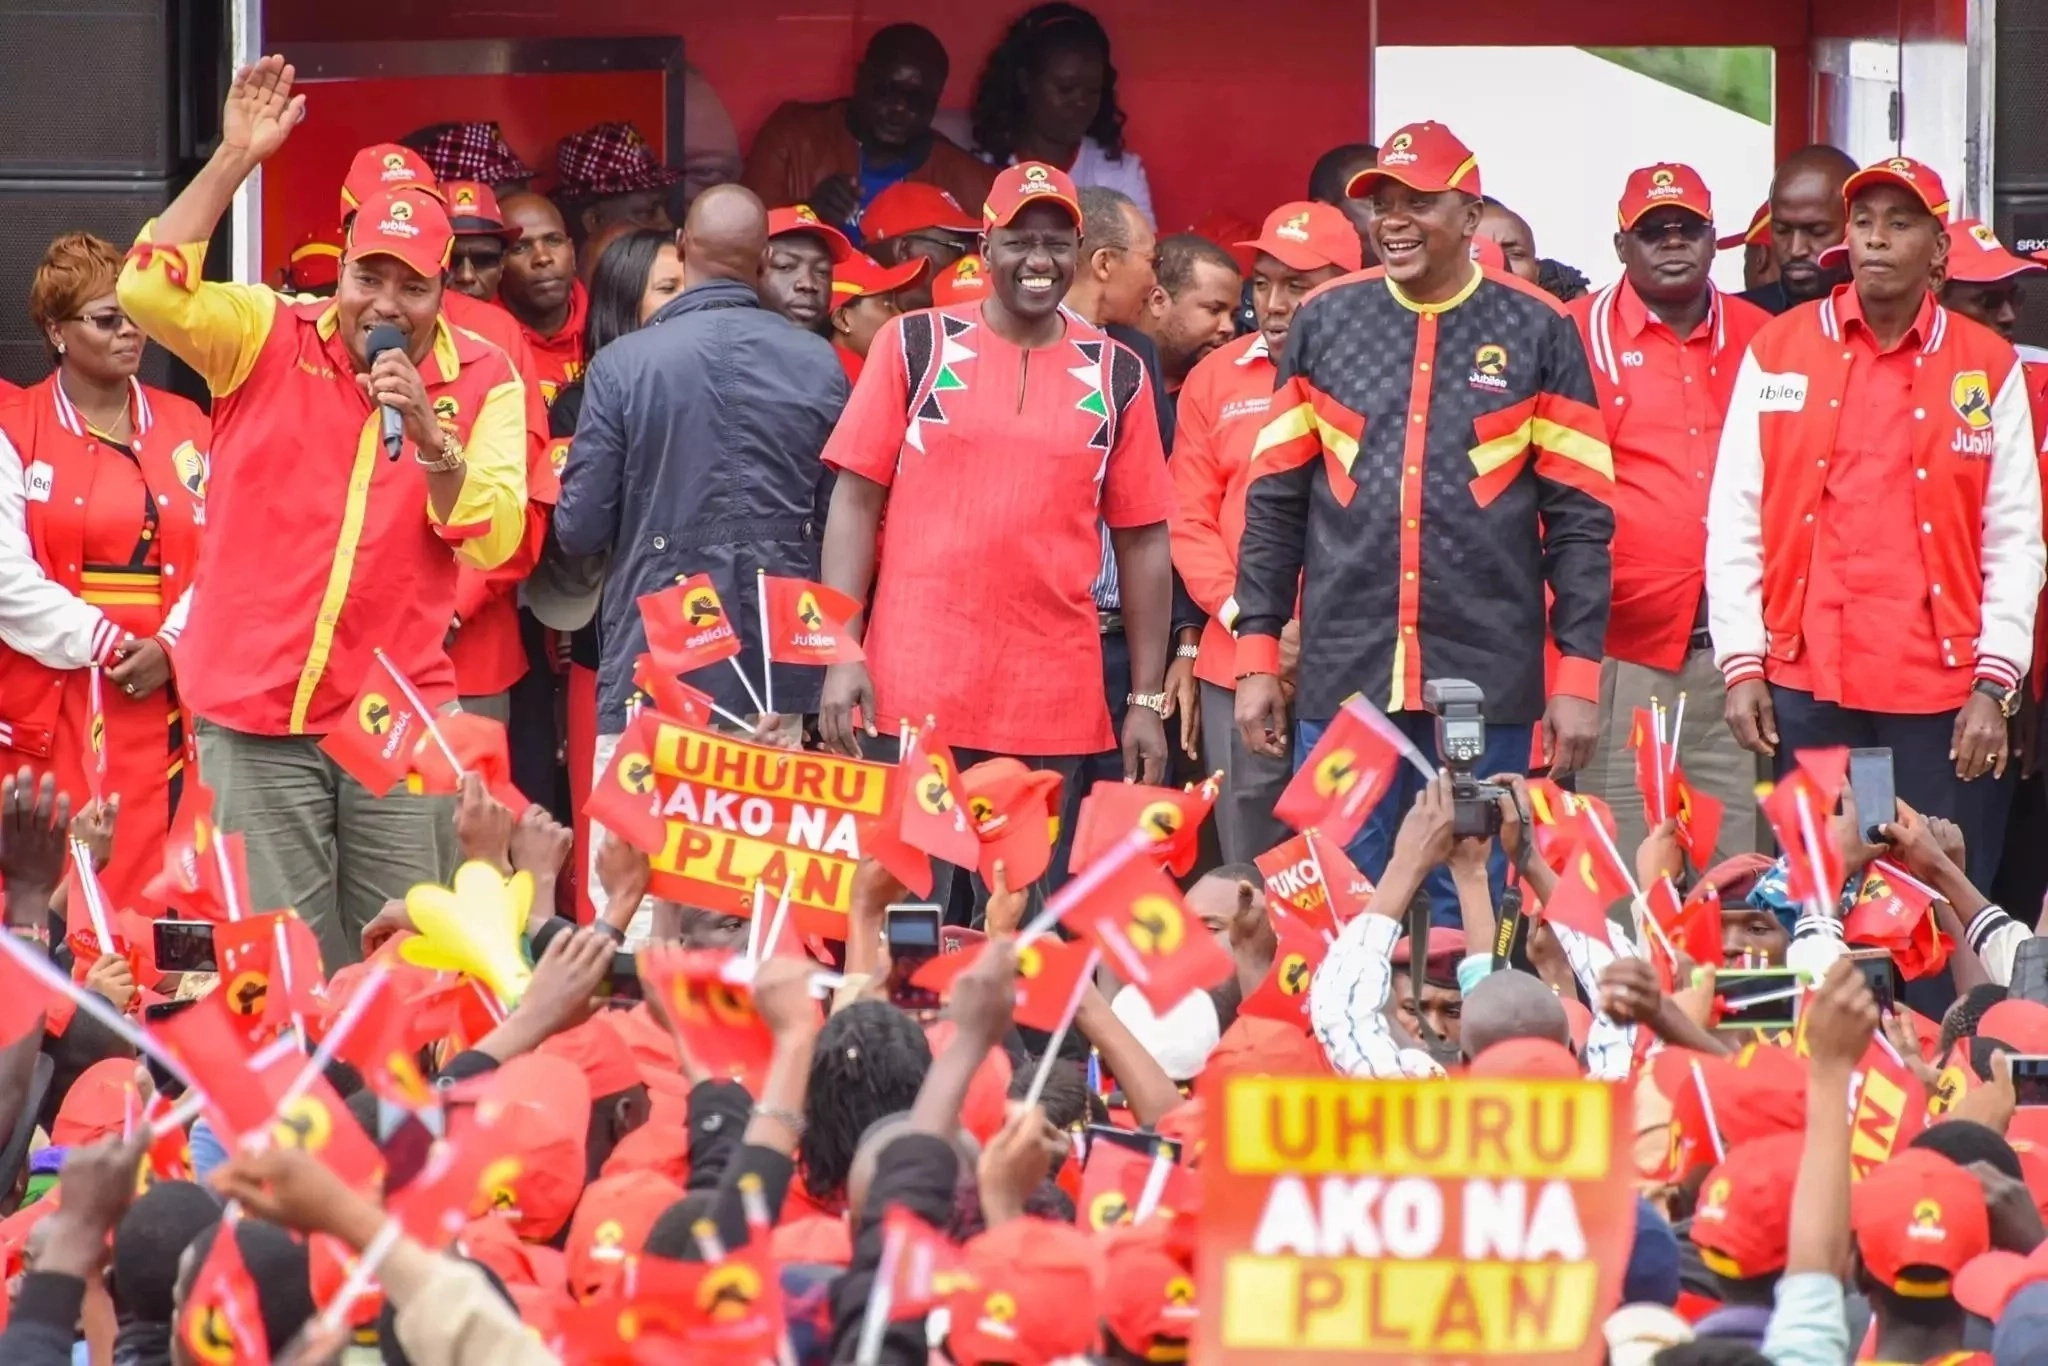 Kenyatta warns Odinga of impeachment if he wins poll